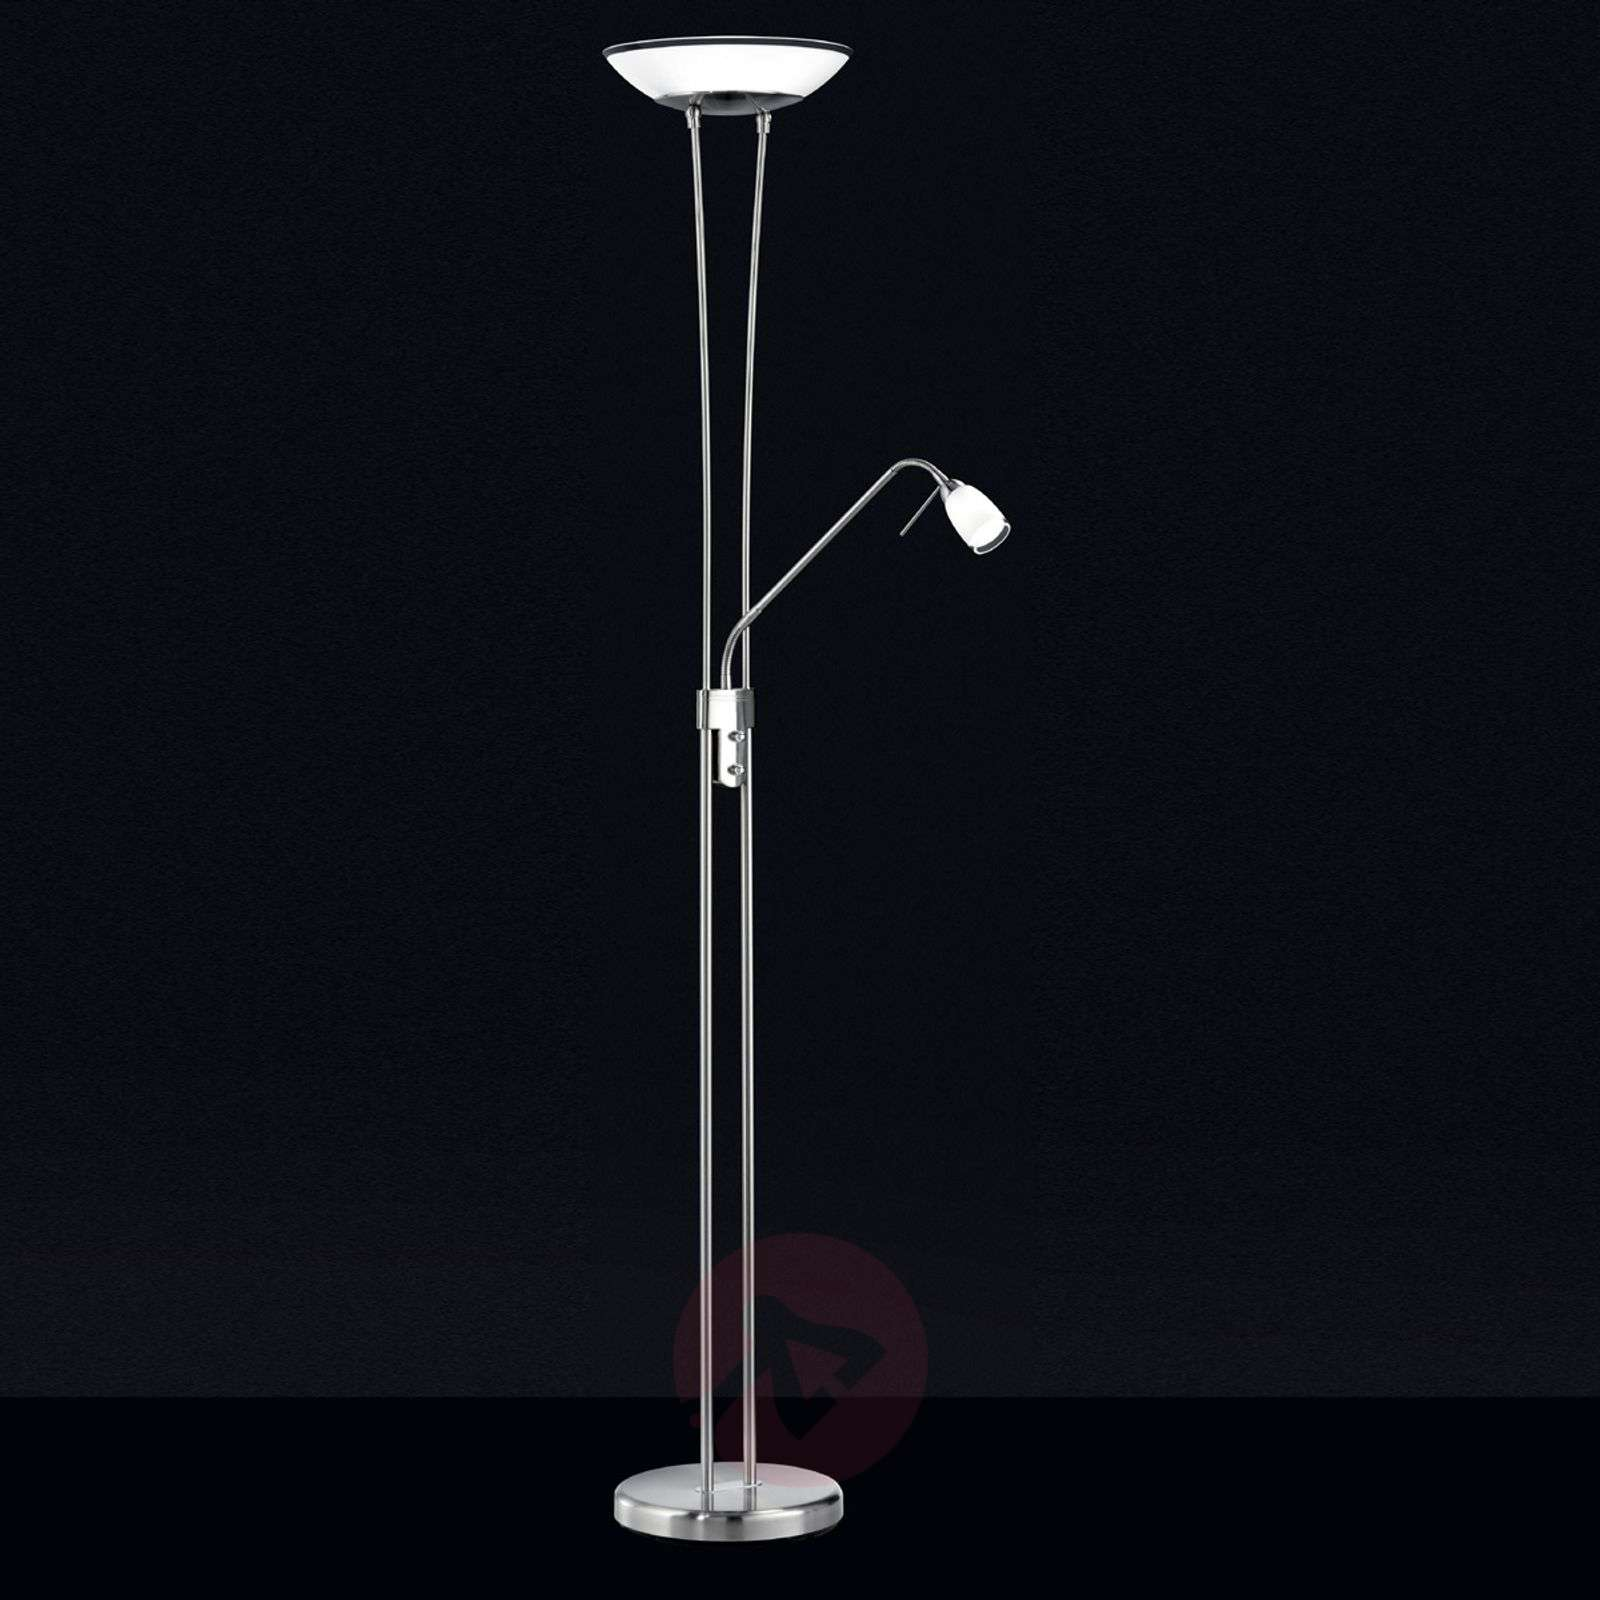 Dimmable floor lamp ERIC-9004380-04